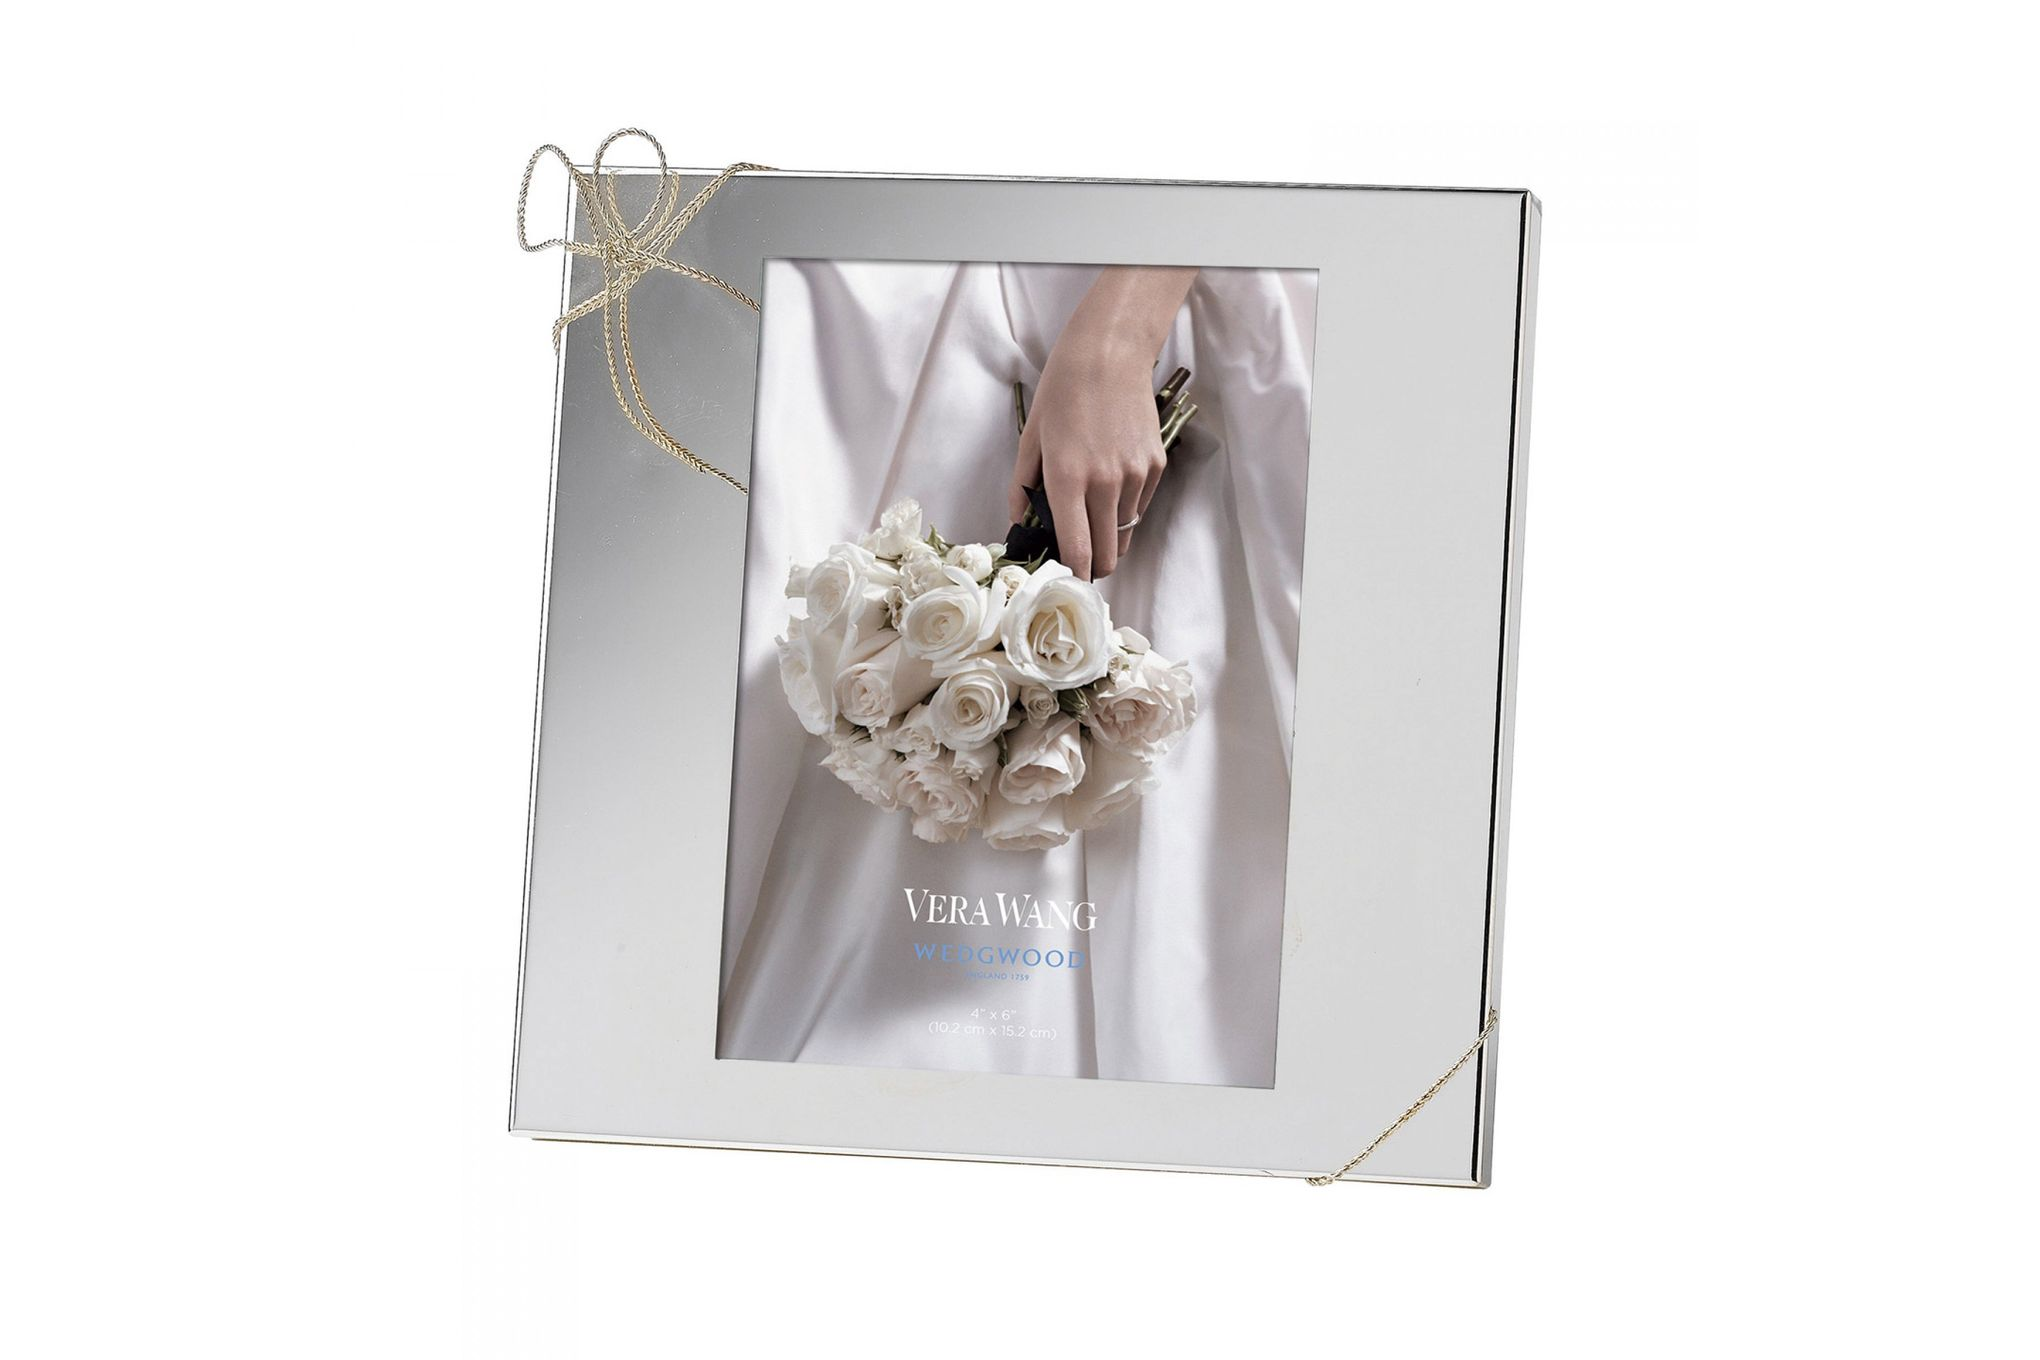 "Vera Wang for Wedgwood Gifts & Accessories Photo Frame Love Knots 4 x 6"" thumb 1"